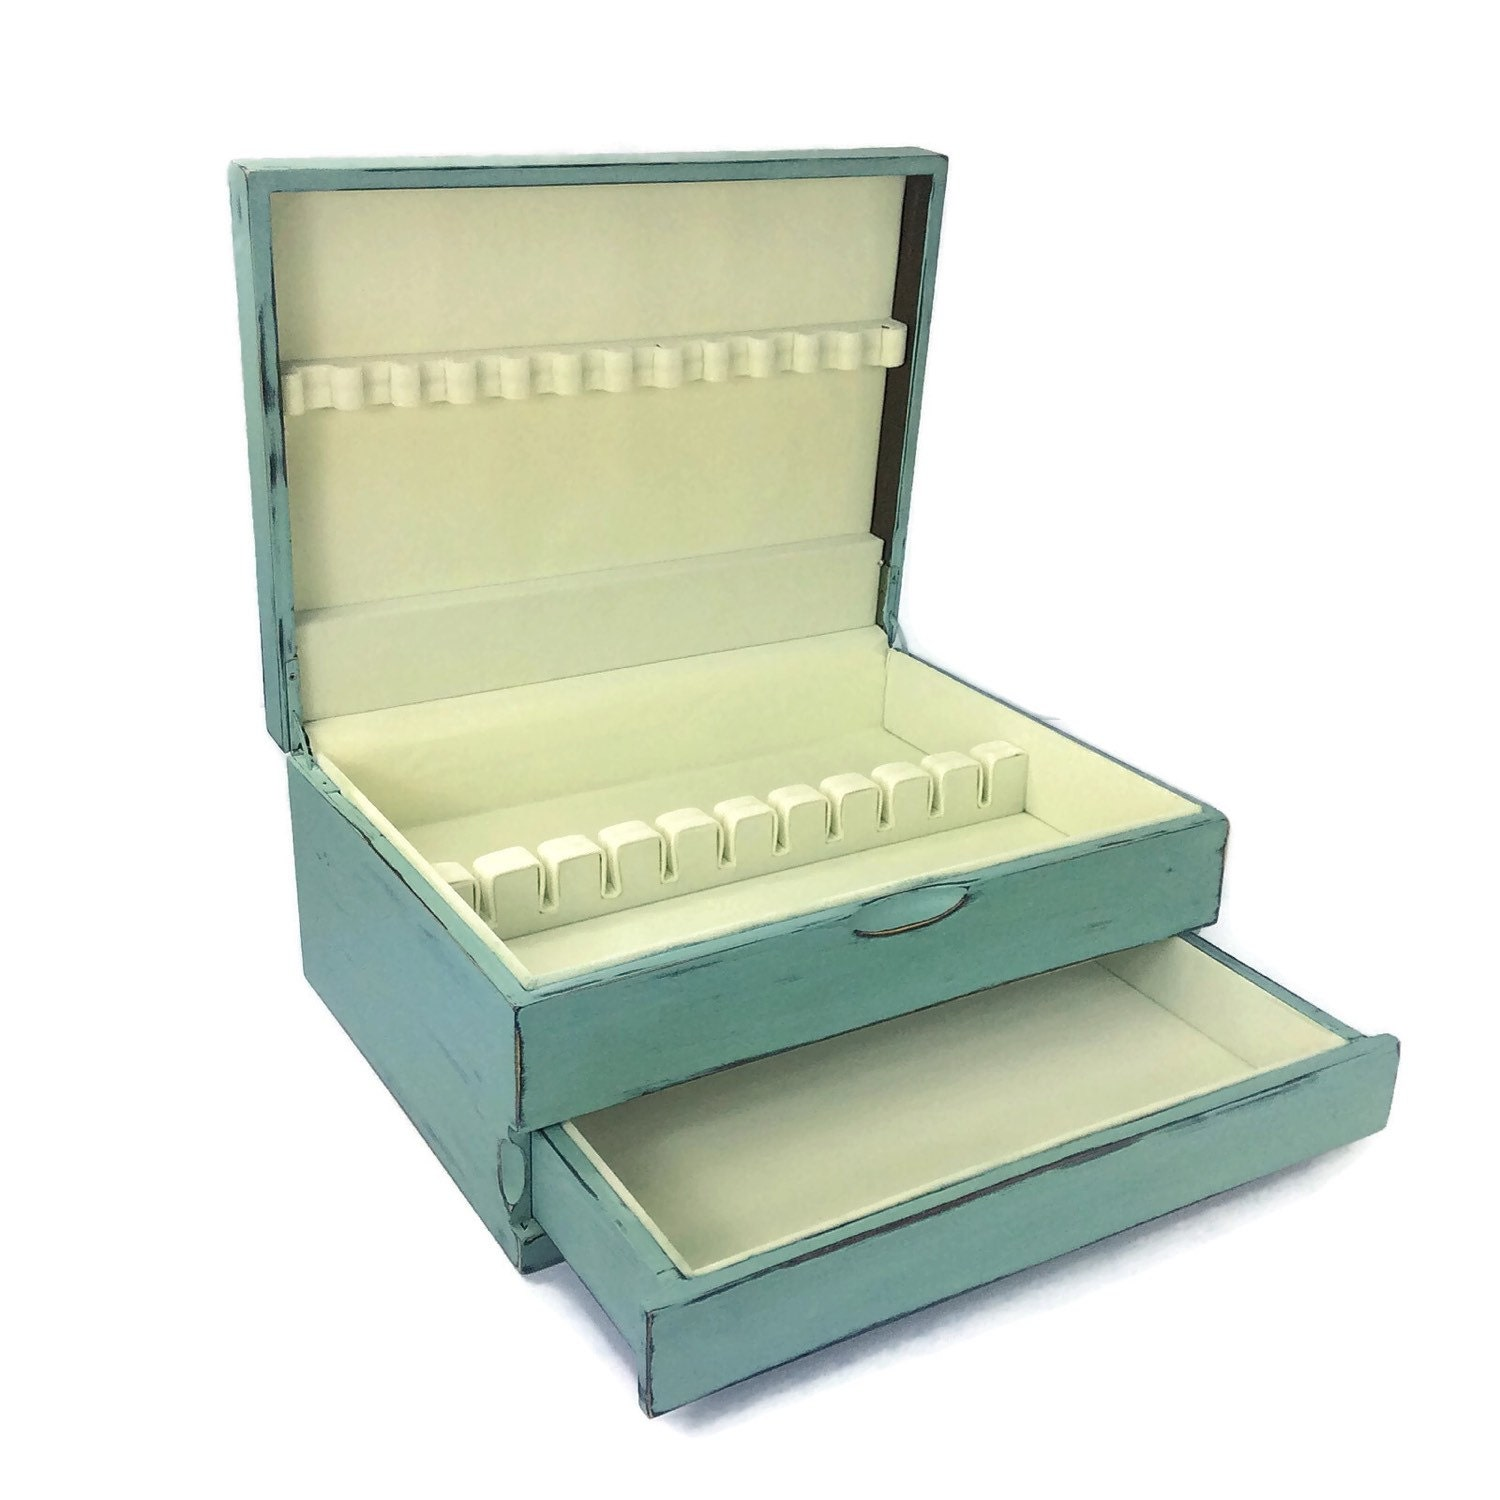 Beautiful flatware holder silverware box wood flatware box for Box for flatware storage